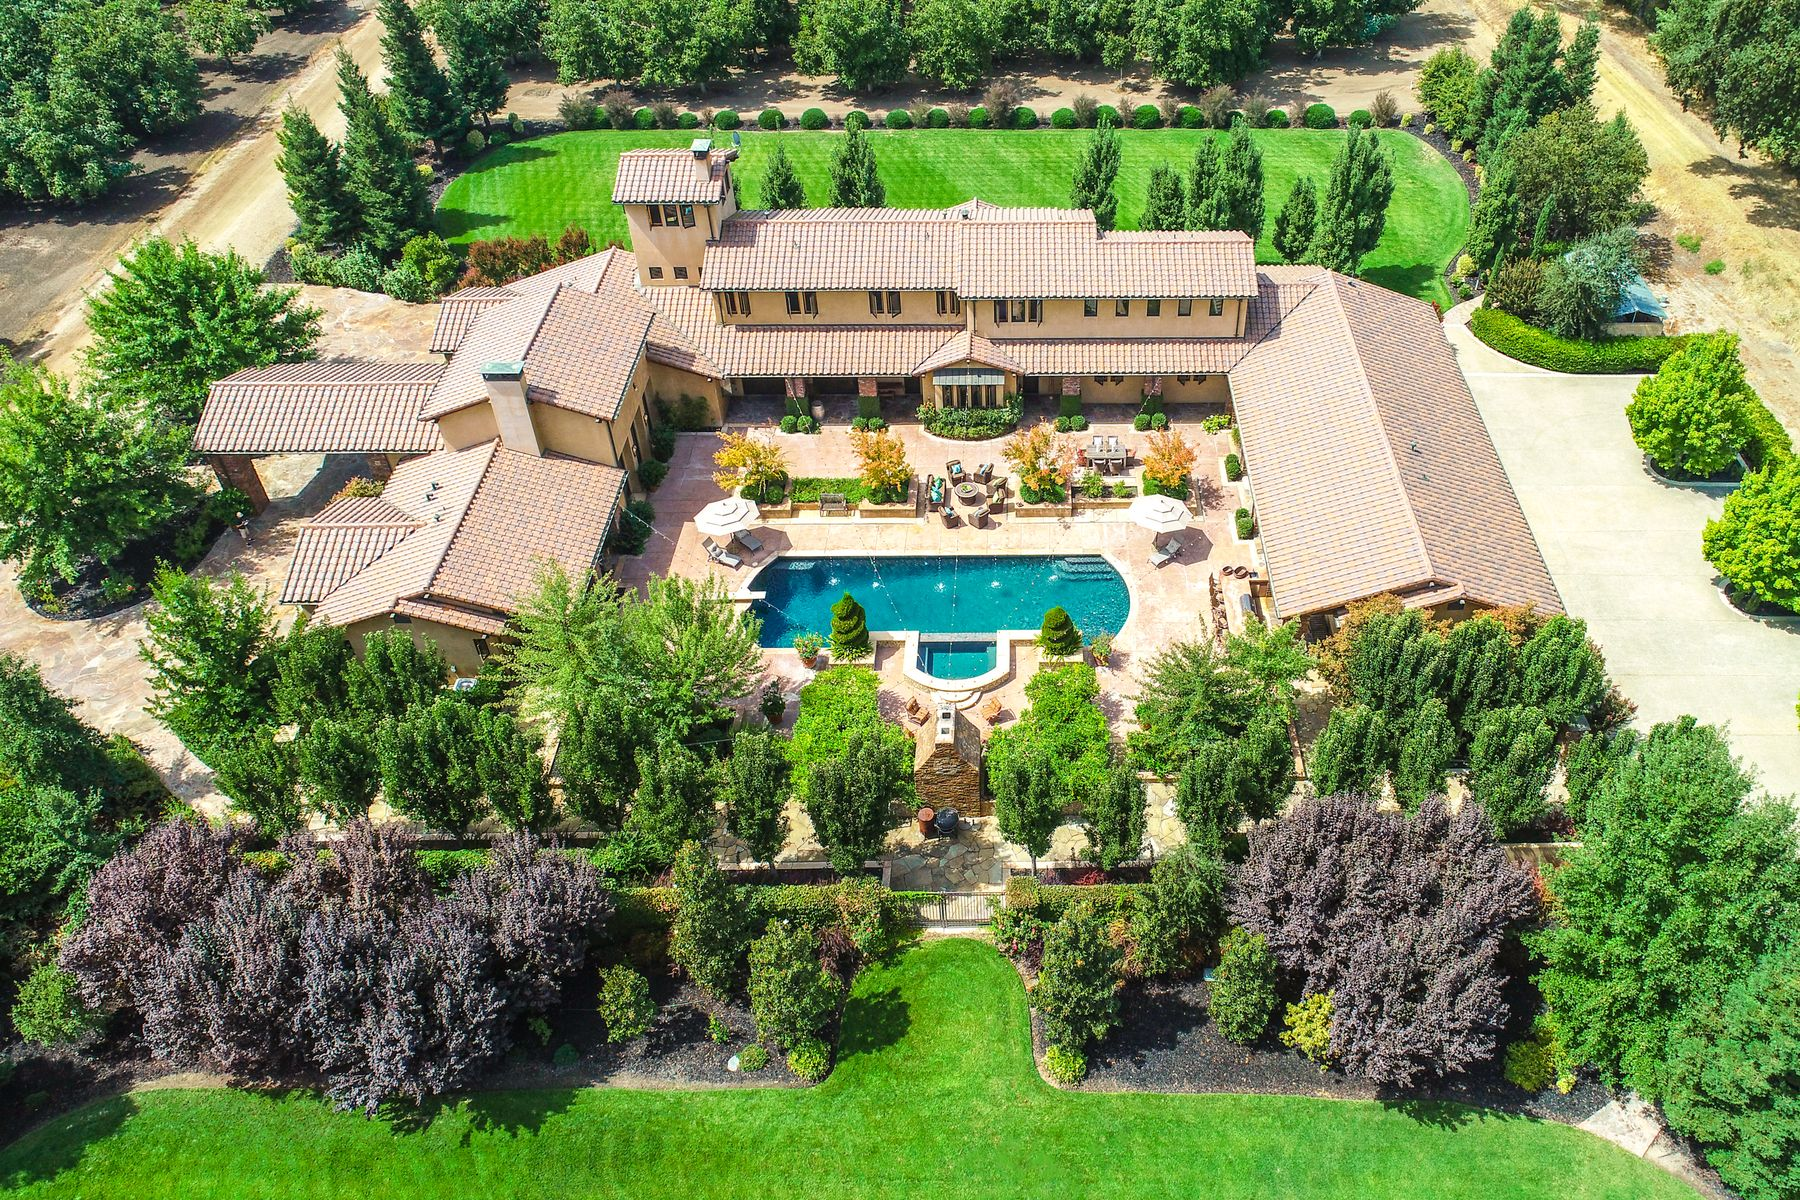 Single Family Homes for Sale at Luxury Country Estate 11039 N State Route Hwy 88 Stockton, California 95202 United States